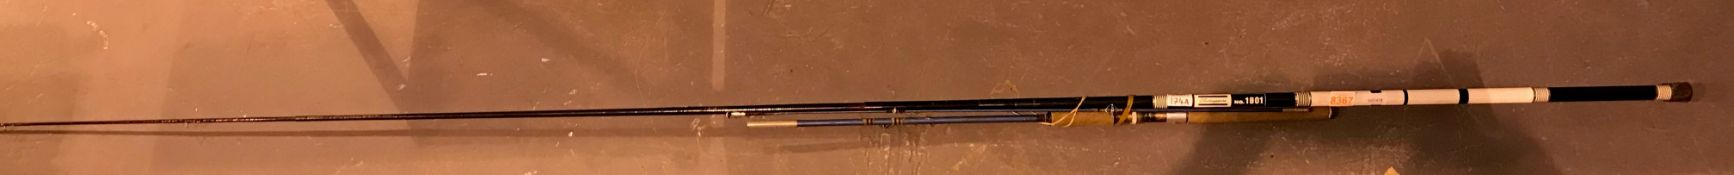 Shakespeare no 1801 fishing rod and one other but not complete. Not available for in-house P&P